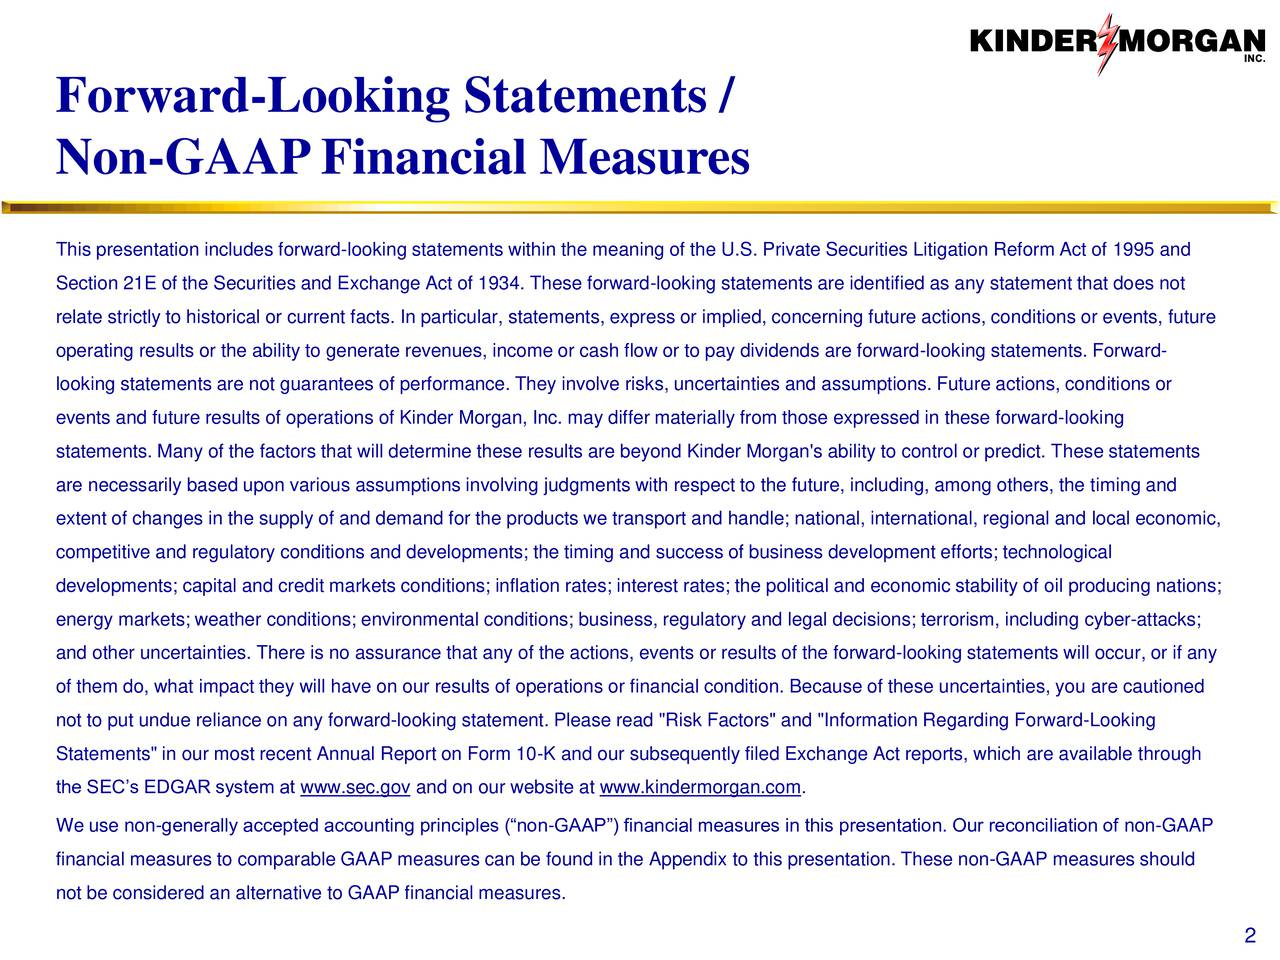 Non-GAAPFinancial Measures This presentation includes forward-looking statements within the meaning of the U.S. Private Securities Litigation Reform Act of 1995 and Section 21E of the Securities and Exchange Act of 1934. These forward-looking statements are identified as any statement that does not relate strictly to historical or current facts. In particular, statements, express or implied, concerning future actions, conditions or events, future operating results or the ability to generate revenues, income or cash flow or to pay dividends are forward-looking statements. Forward- looking statements are not guarantees of performance. They involve risks, uncertainties and assumptions. Future actions, conditions or events and future results of operations of Kinder Morgan, Inc. may differ materially from those expressed in these forward-looking statements. Many of the factors that will determine these results are beyond Kinder Morgan's ability to control or predict. These statements are necessarily based upon various assumptions involving judgments with respect to the future, including, among others, the timing and extent of changes in the supply of and demand for the products we transport and handle; national, international, regional and local economic, competitive and regulatory conditions and developments; the timing and success of business development efforts; technological developments; capital and credit markets conditions; inflation rates; interest rates; the political and economic stability of oil producing nations; energy markets; weather conditions; environmental conditions; business, regulatory and legal decisions; terrorism, including cyber-attacks; and other uncertainties. There is no assurance that any of the actions, events or results of the forward-looking statements will occur, or if any of them do, what impact they will have on our results of operations or financial condition. Because of these uncertainties, you are cautioned not to put undue reliance 